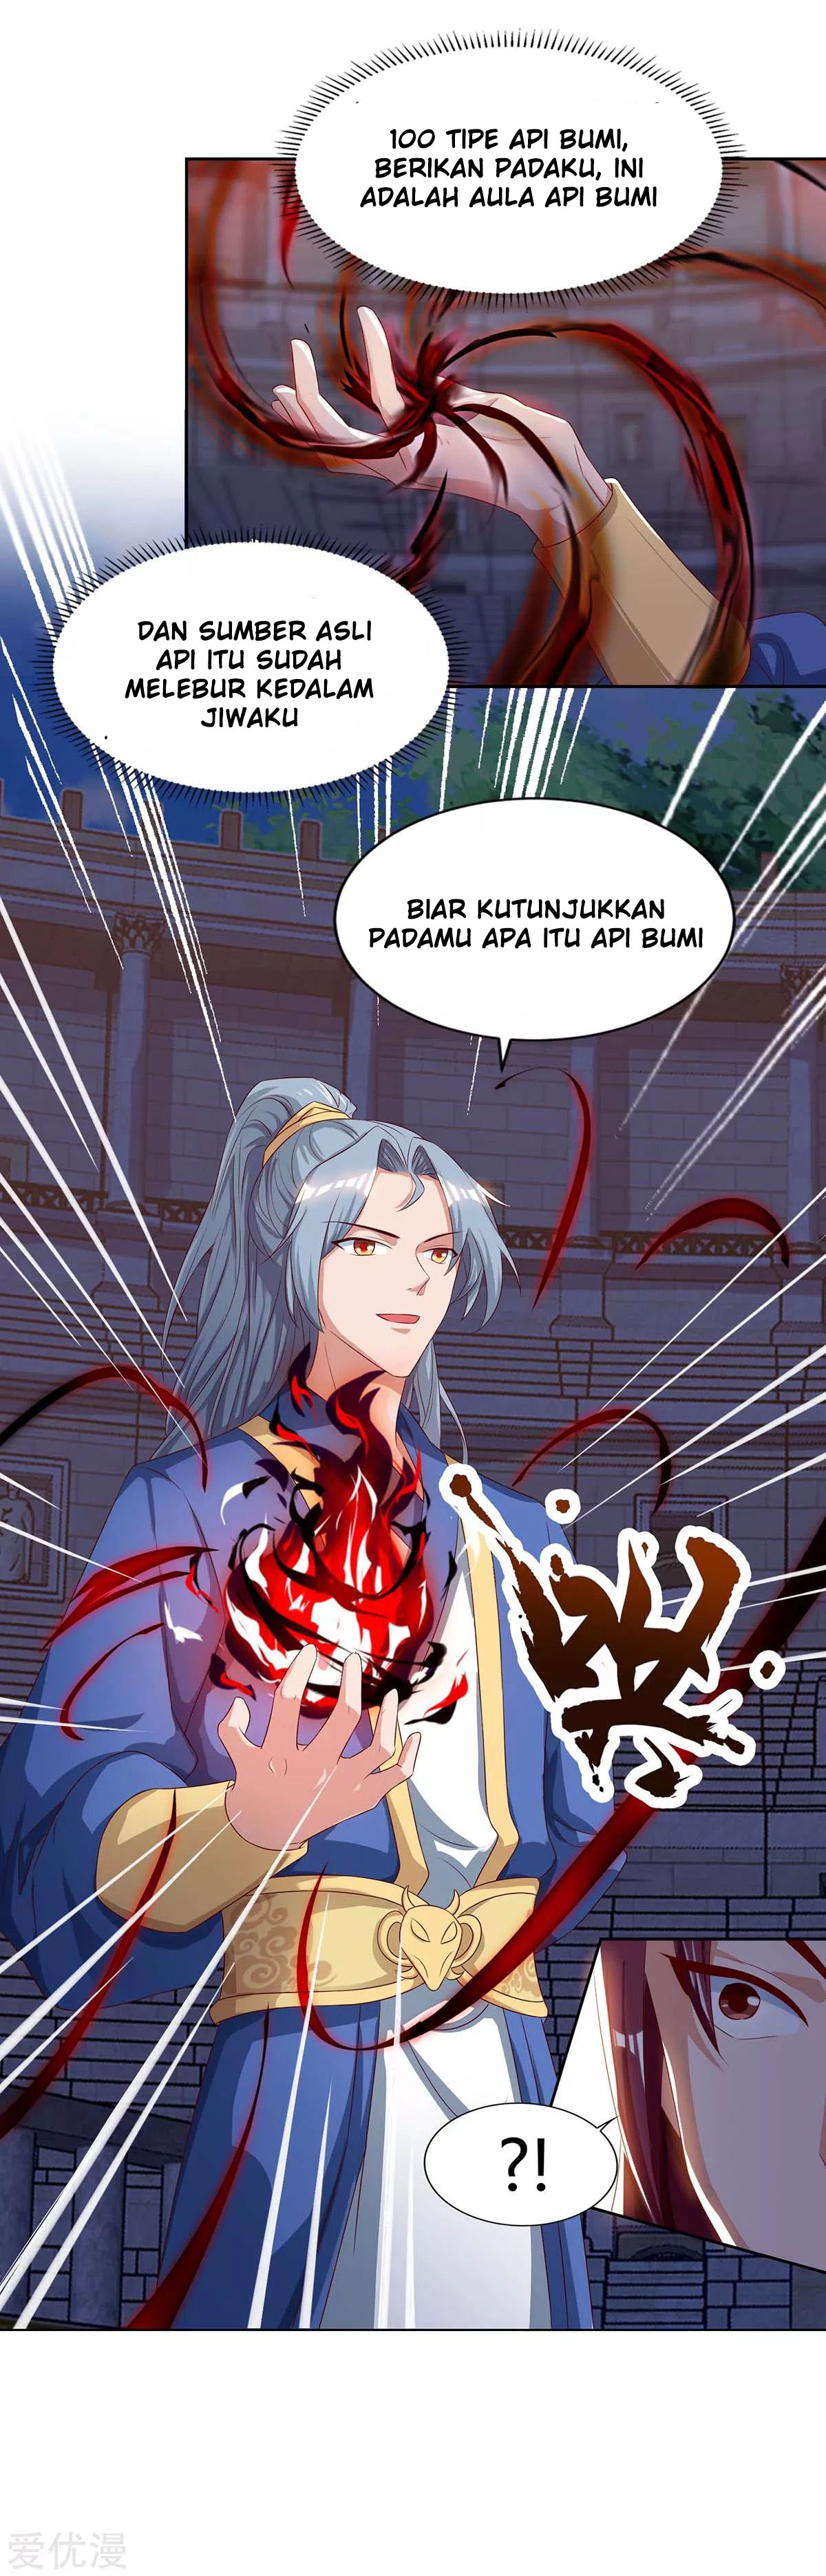 Rebirth After 80.000 Years Passed Chapter 104